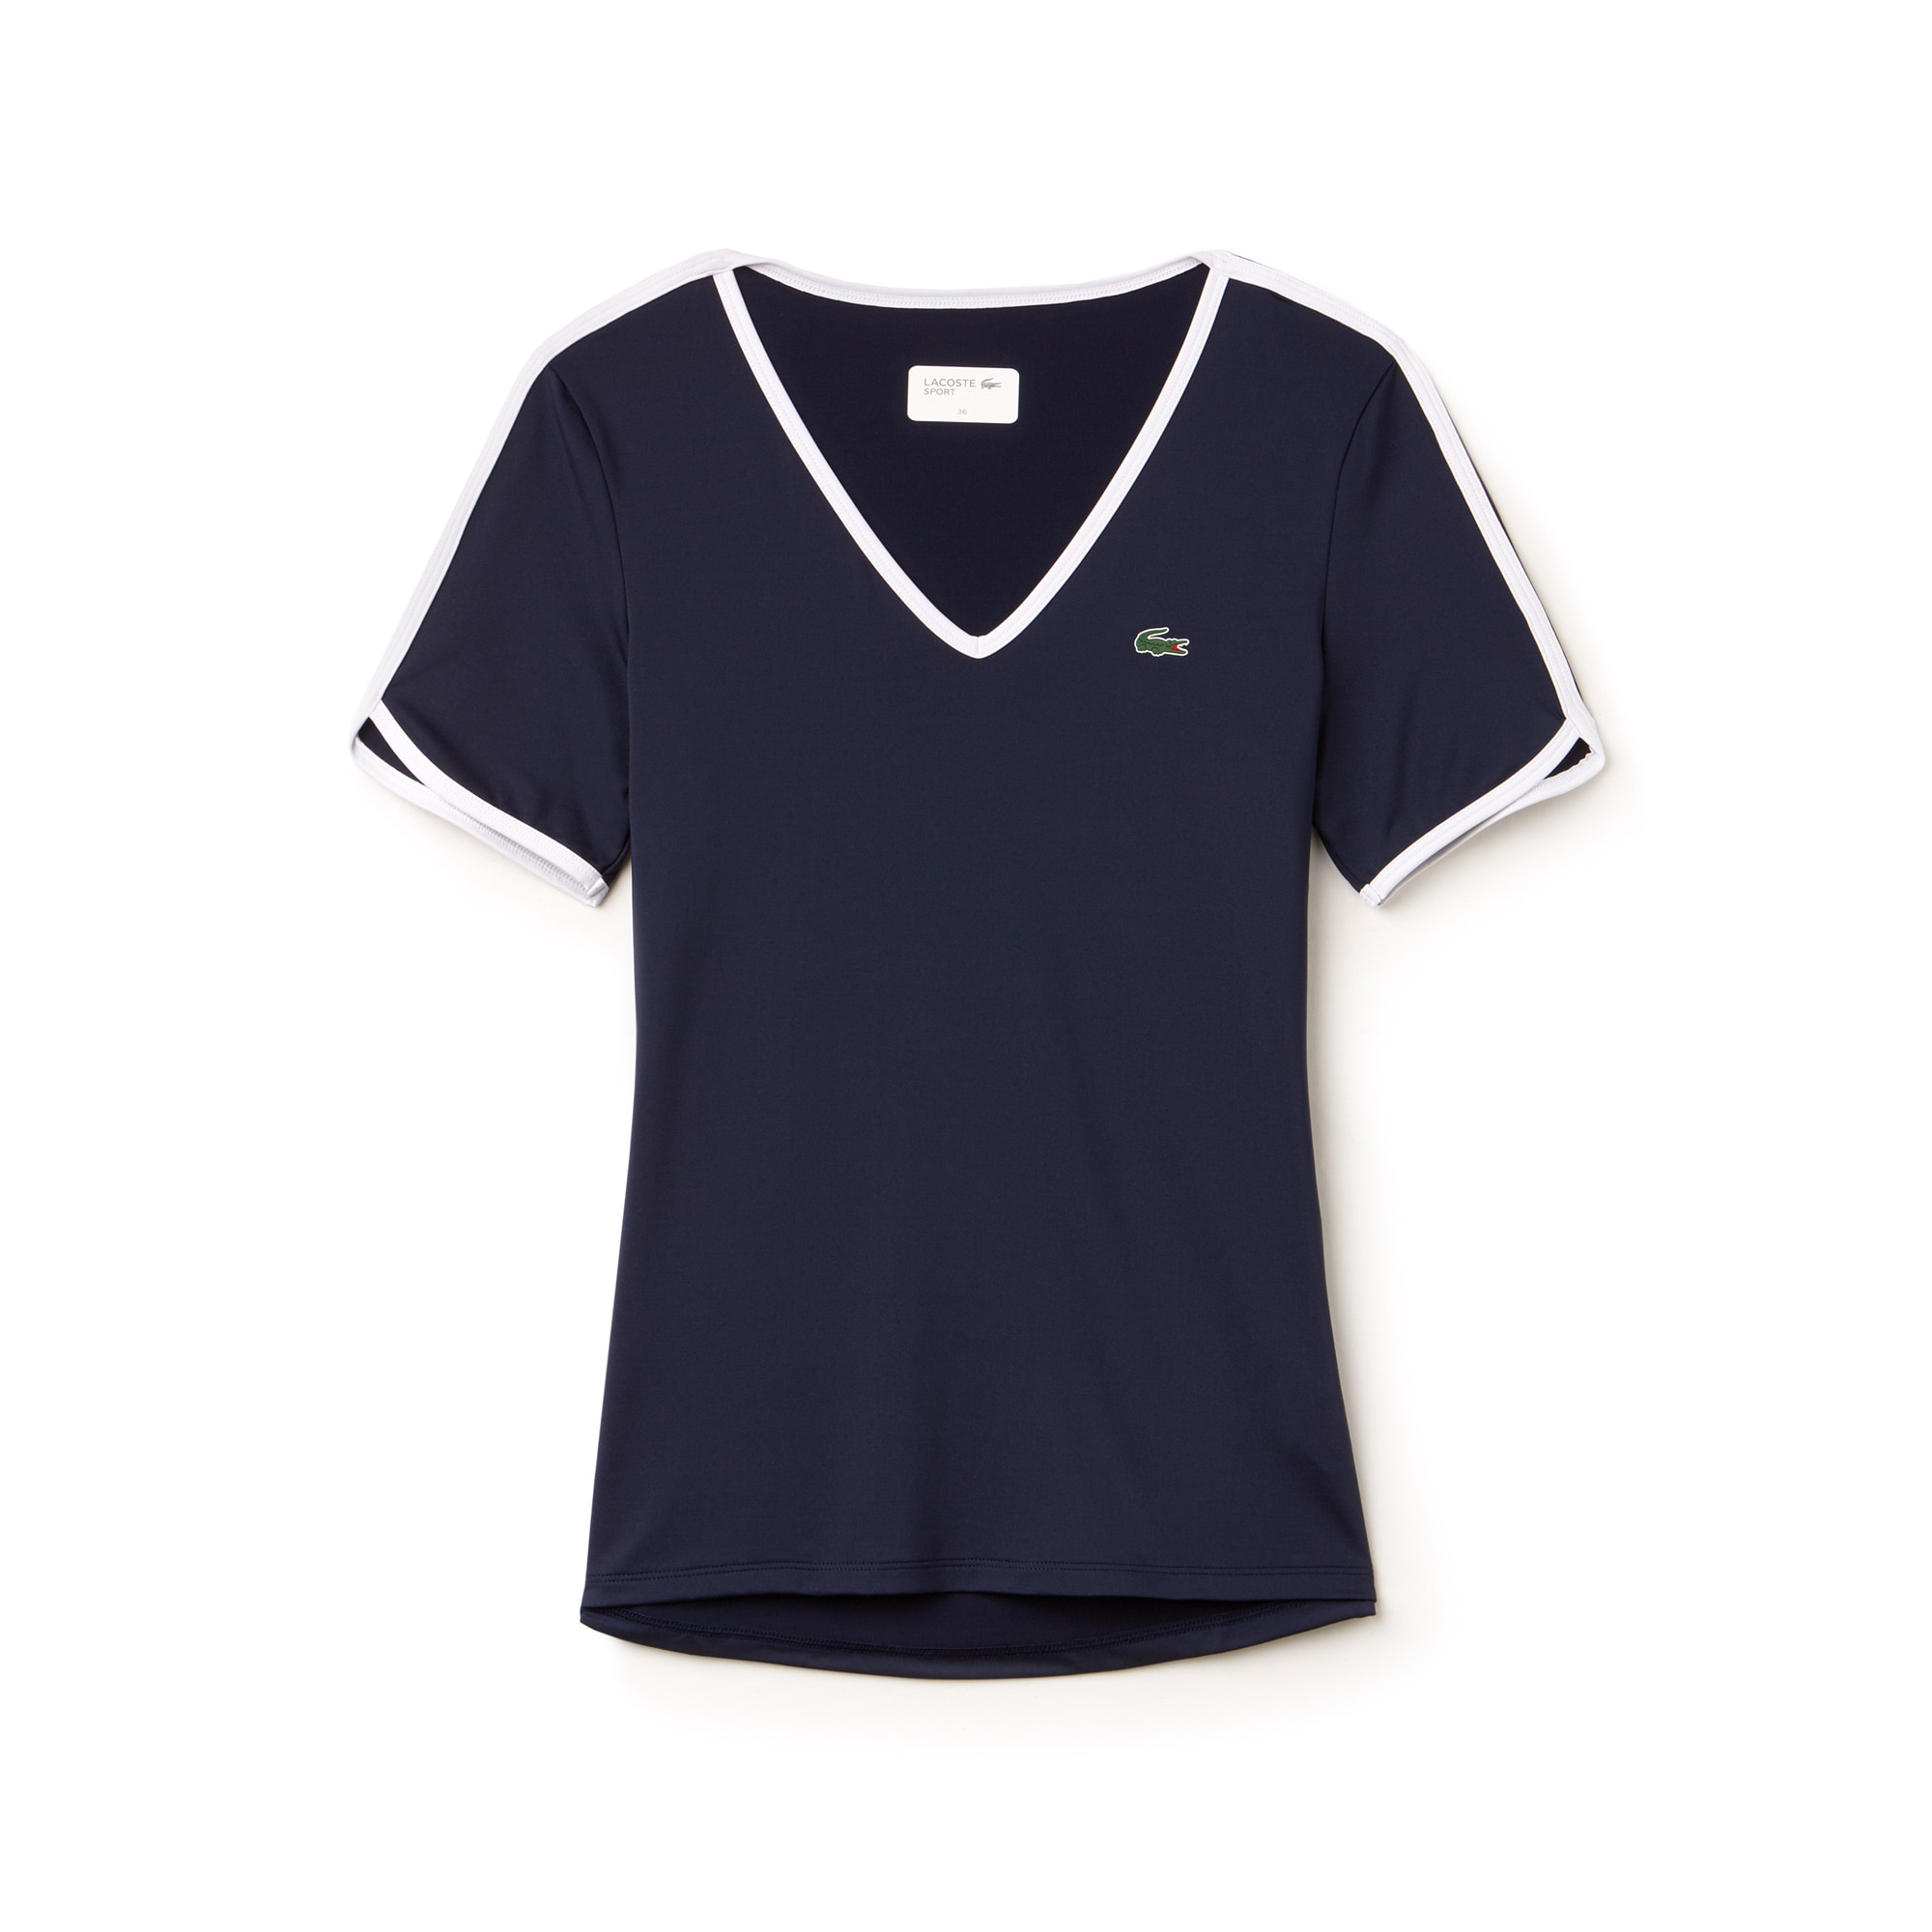 T-shirt con collo a V Tennis Lacoste SPORT in jersey stretch tecnico